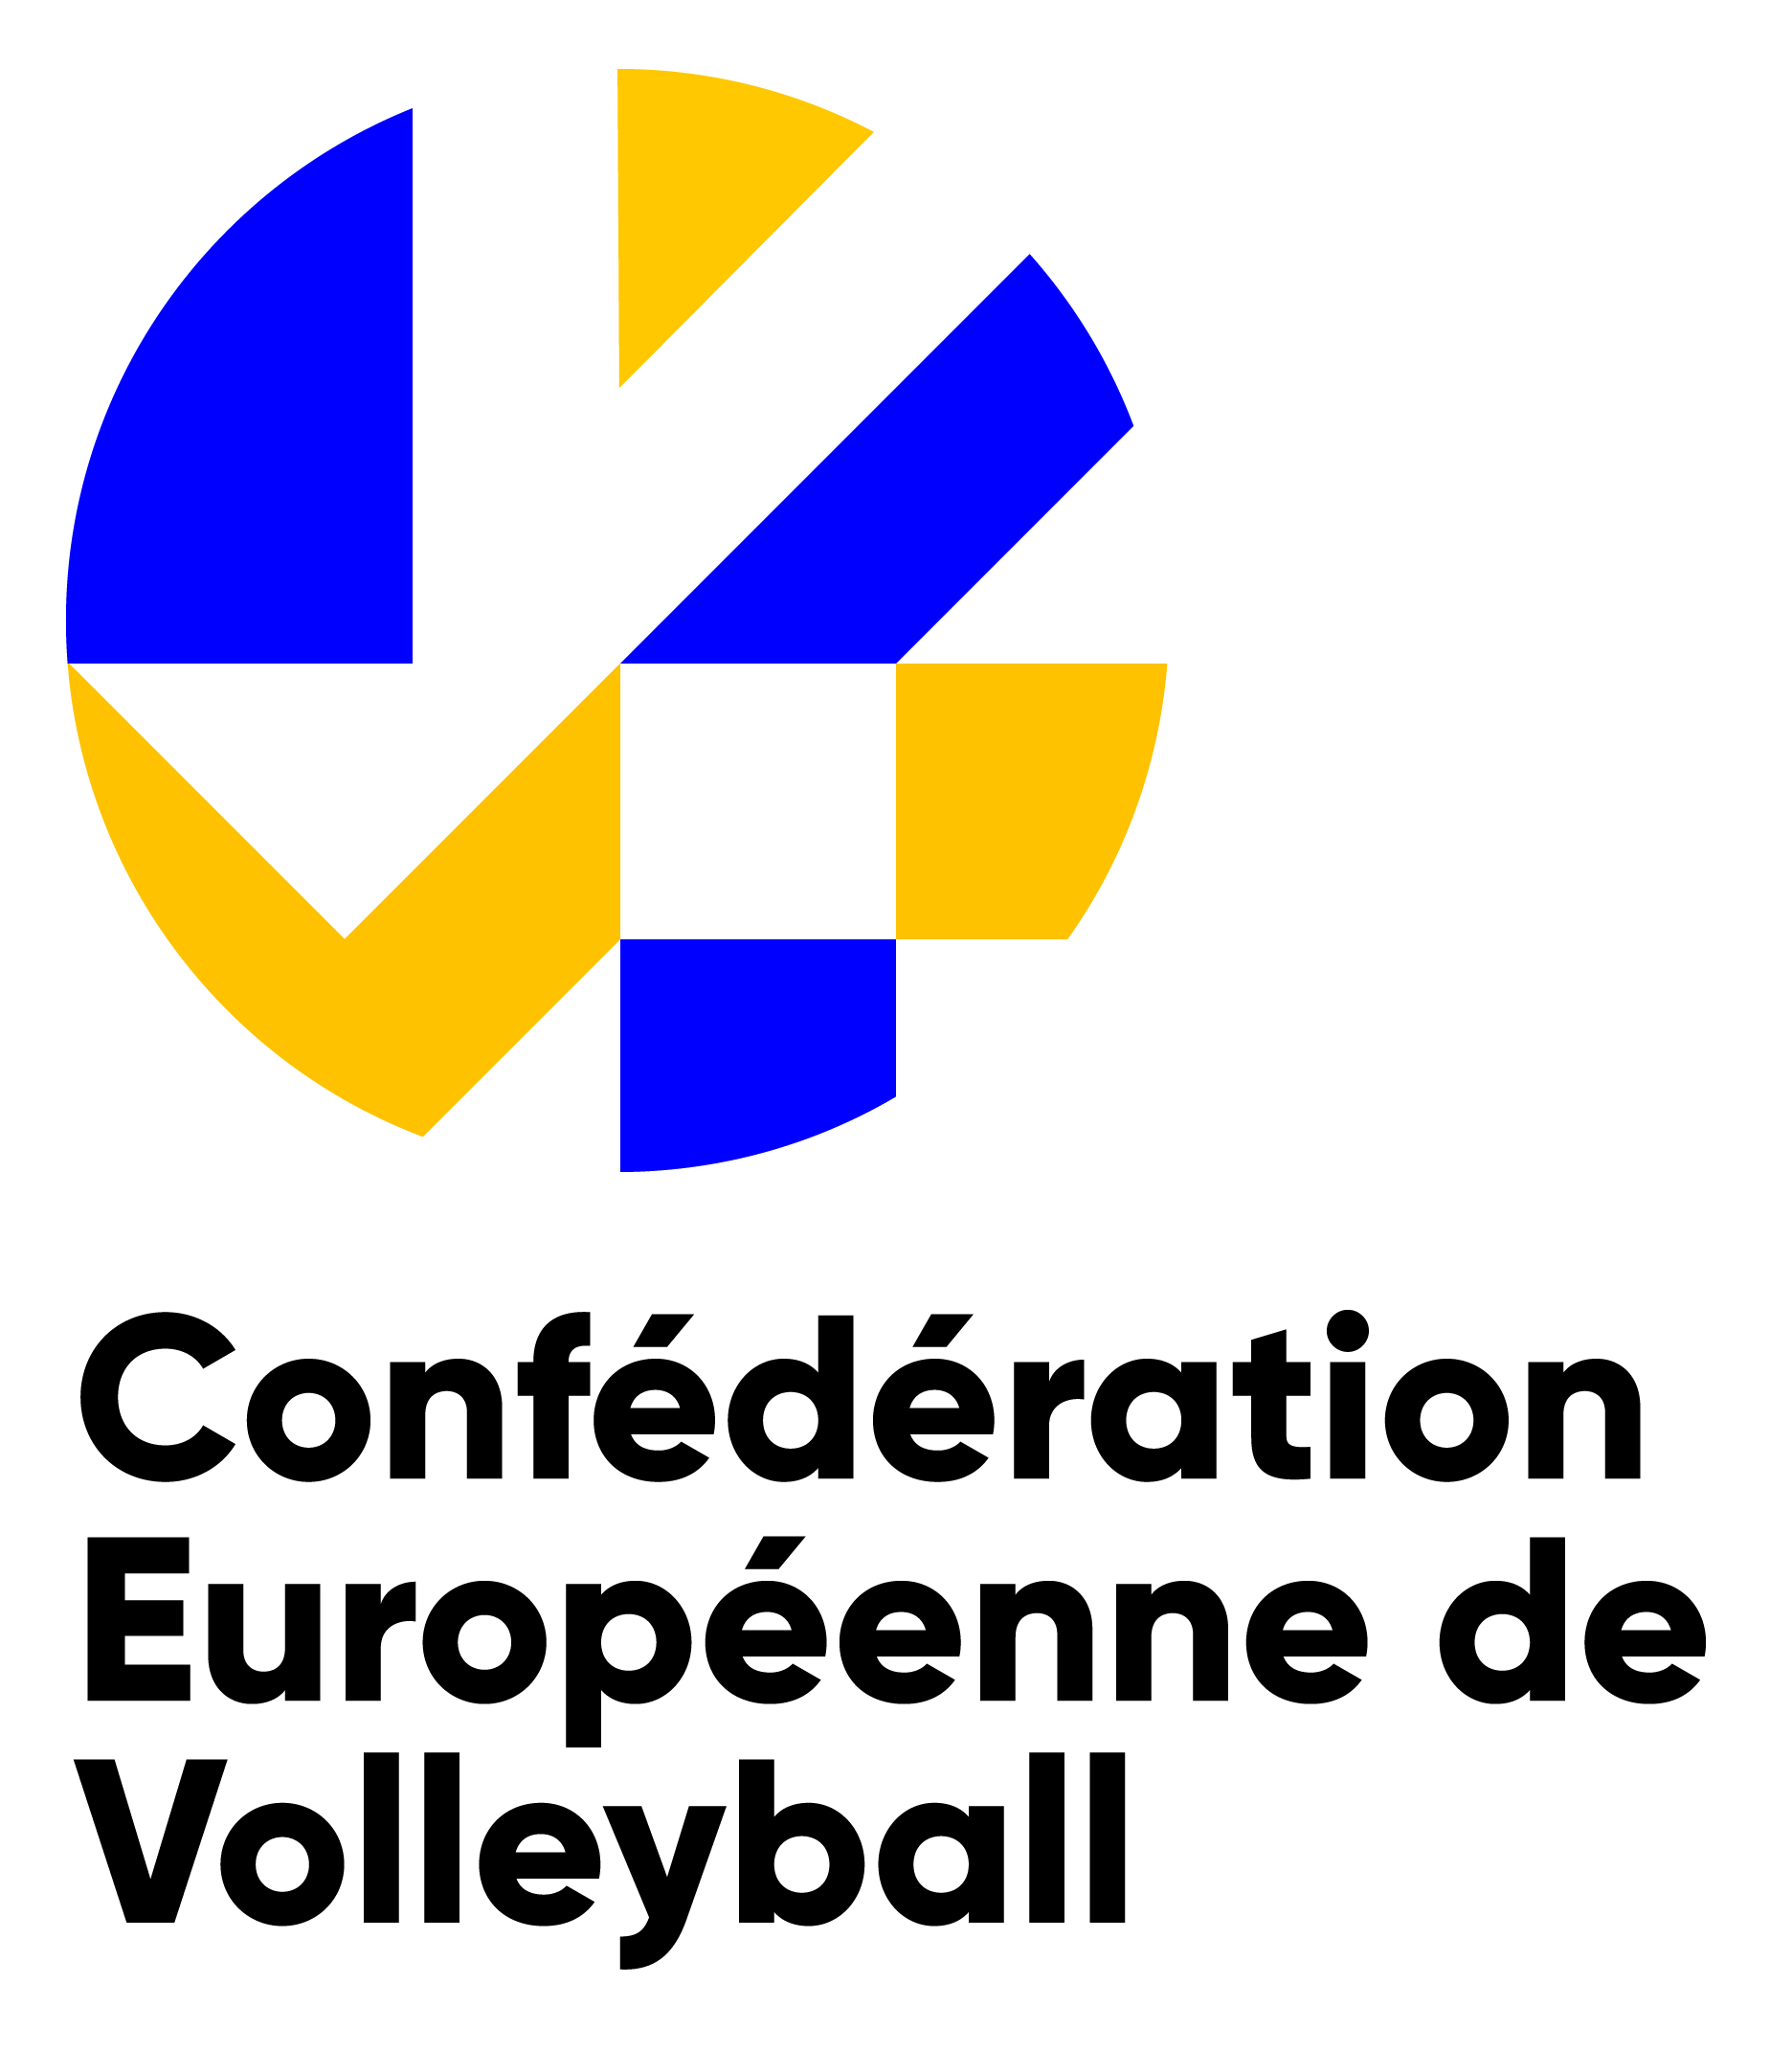 European Volleyball Confederation (CEV) – Points Project